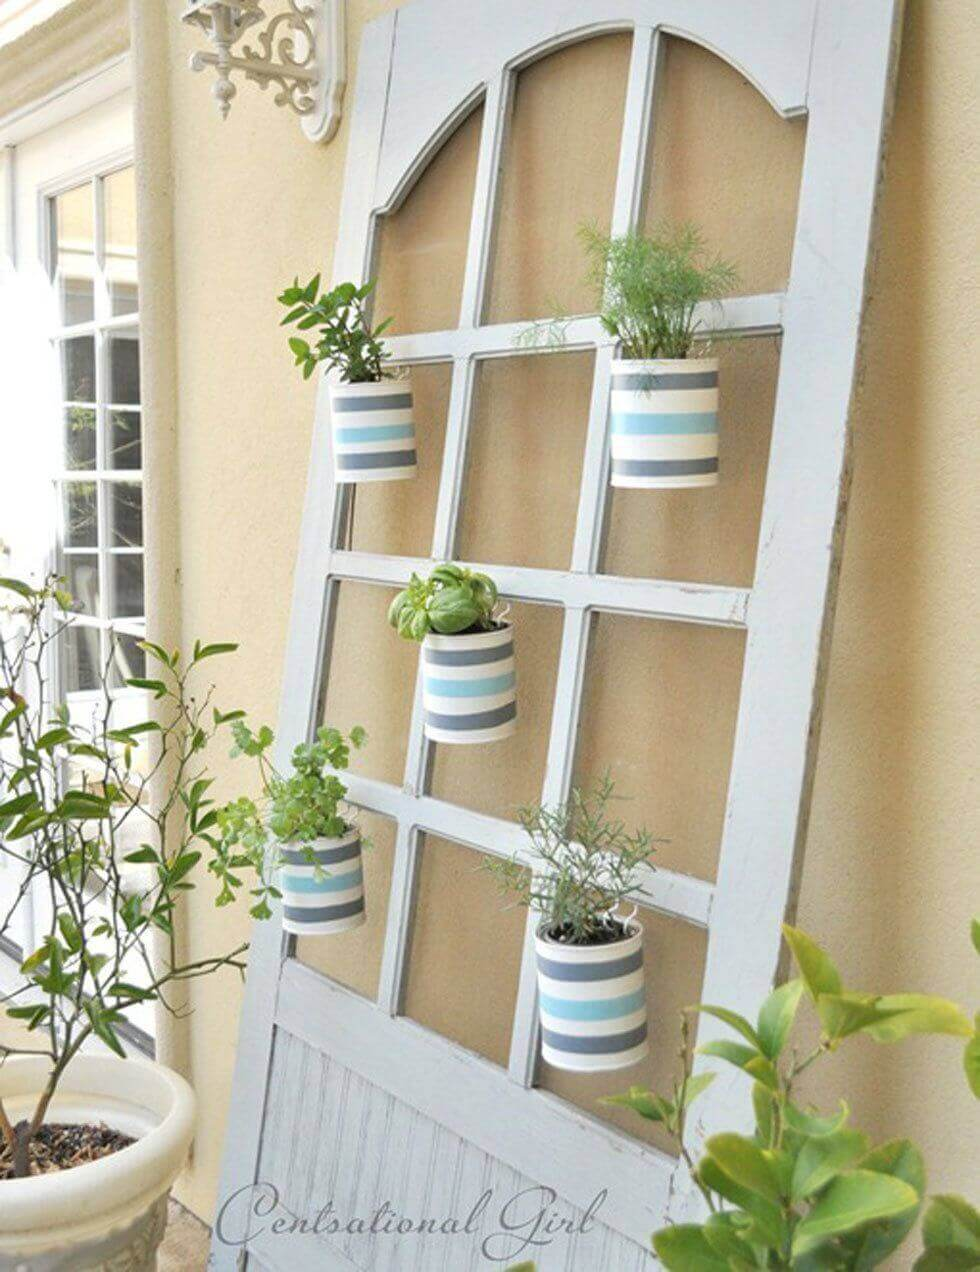 Hang Herb Pots in the Windows | Creative Repurposed Old Door Ideas & Projects For Your Backyard